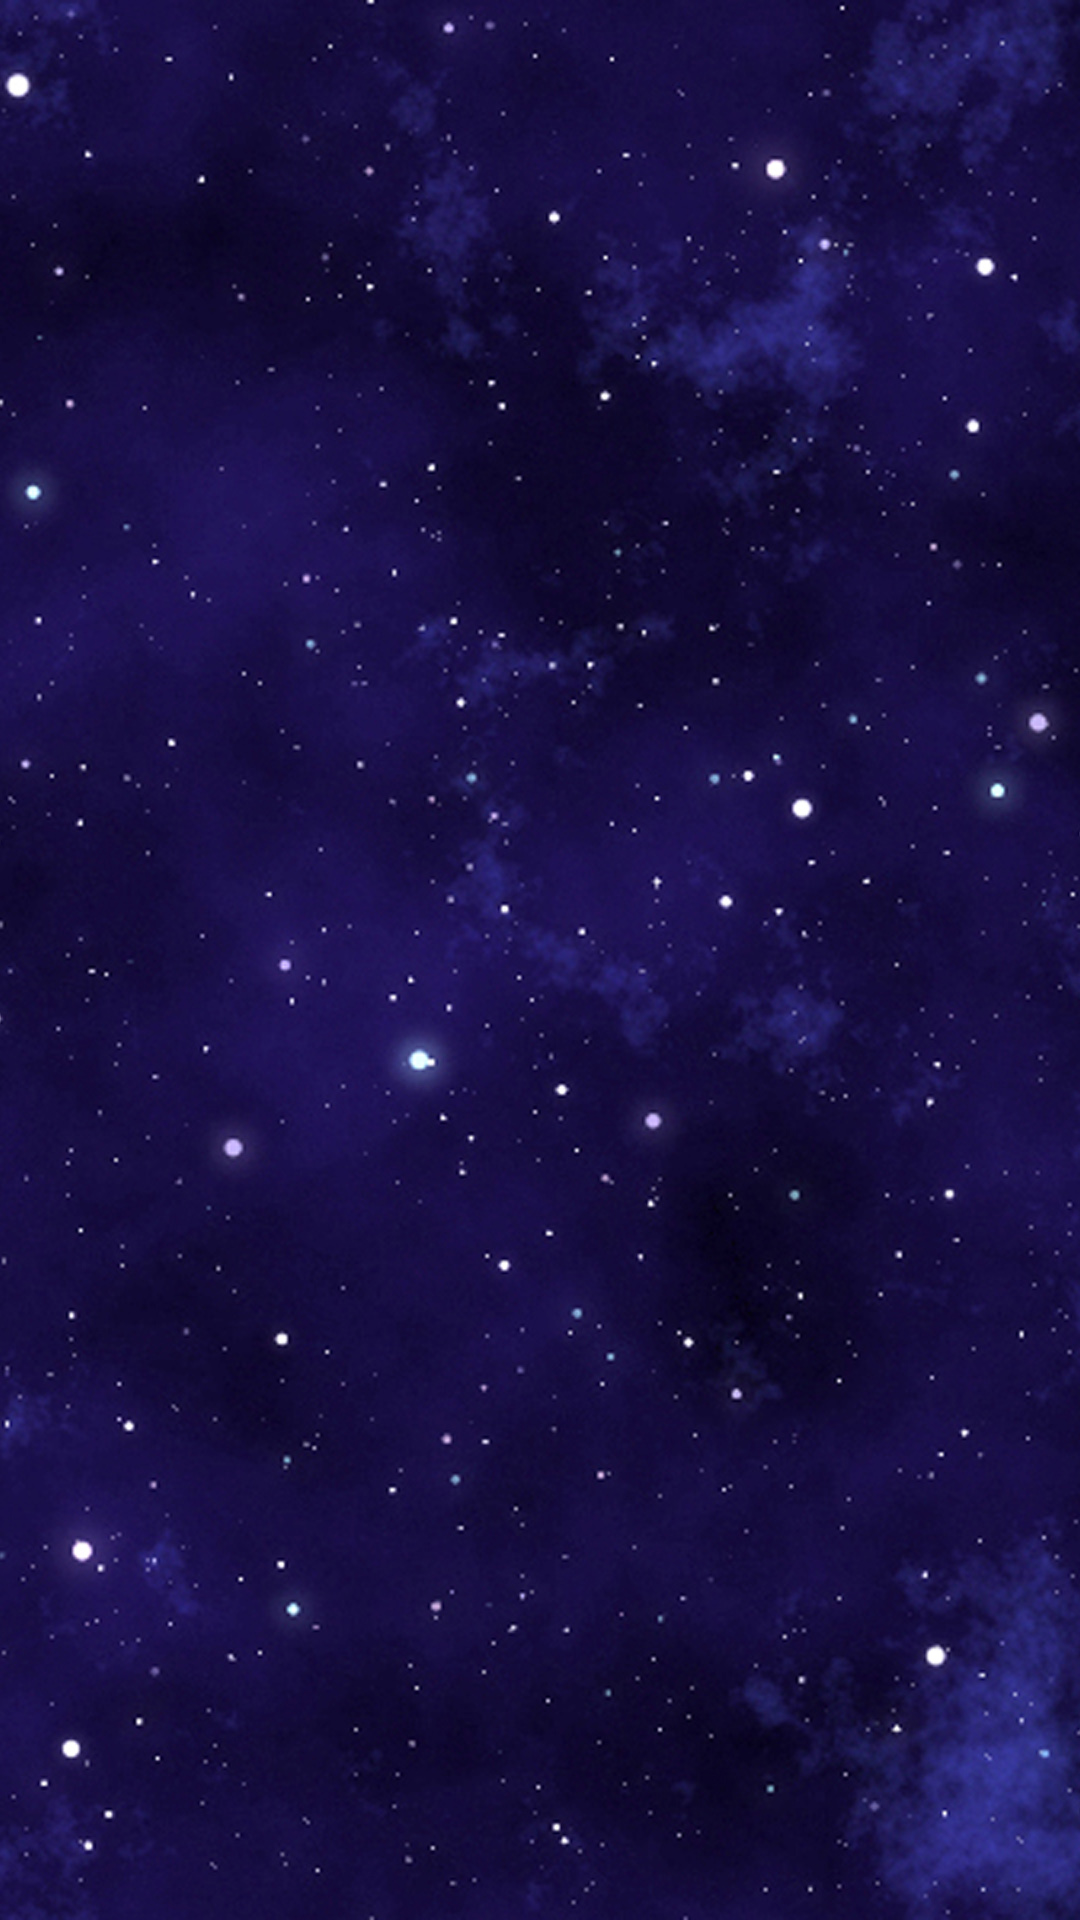 Deep Space Backgrounds 1080x1920